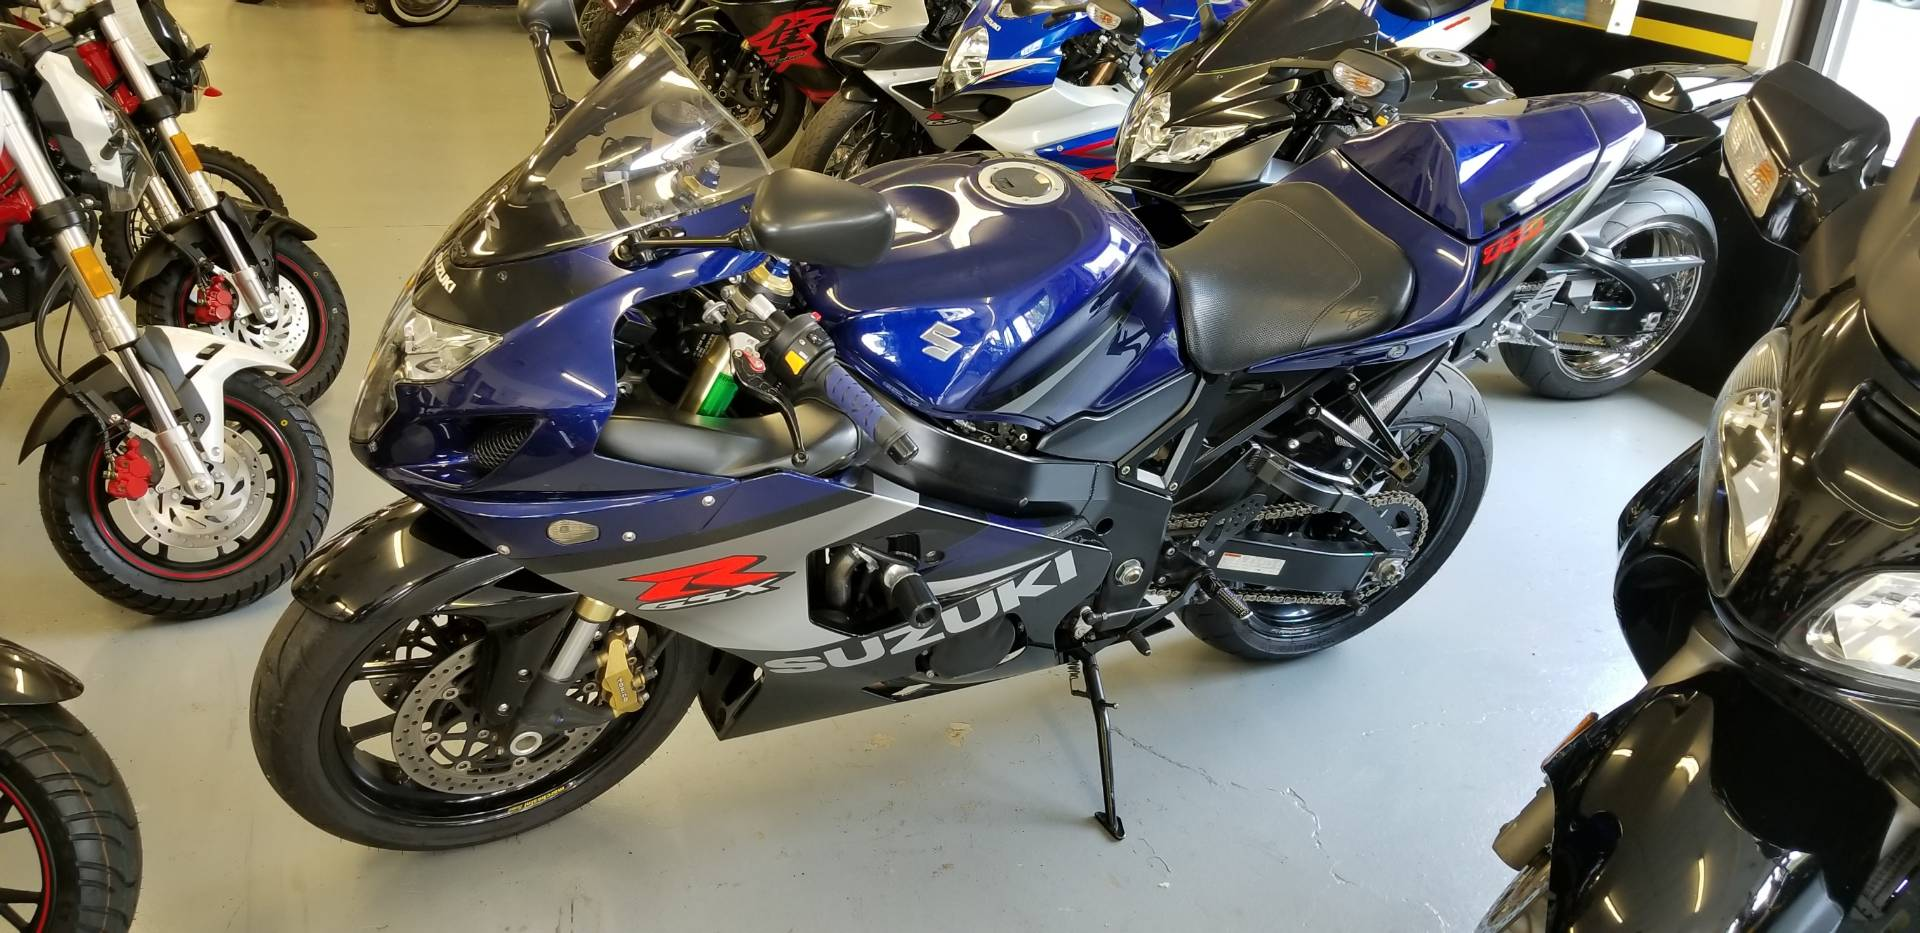 2005 Suzuki GSX-R750 for sale 57351